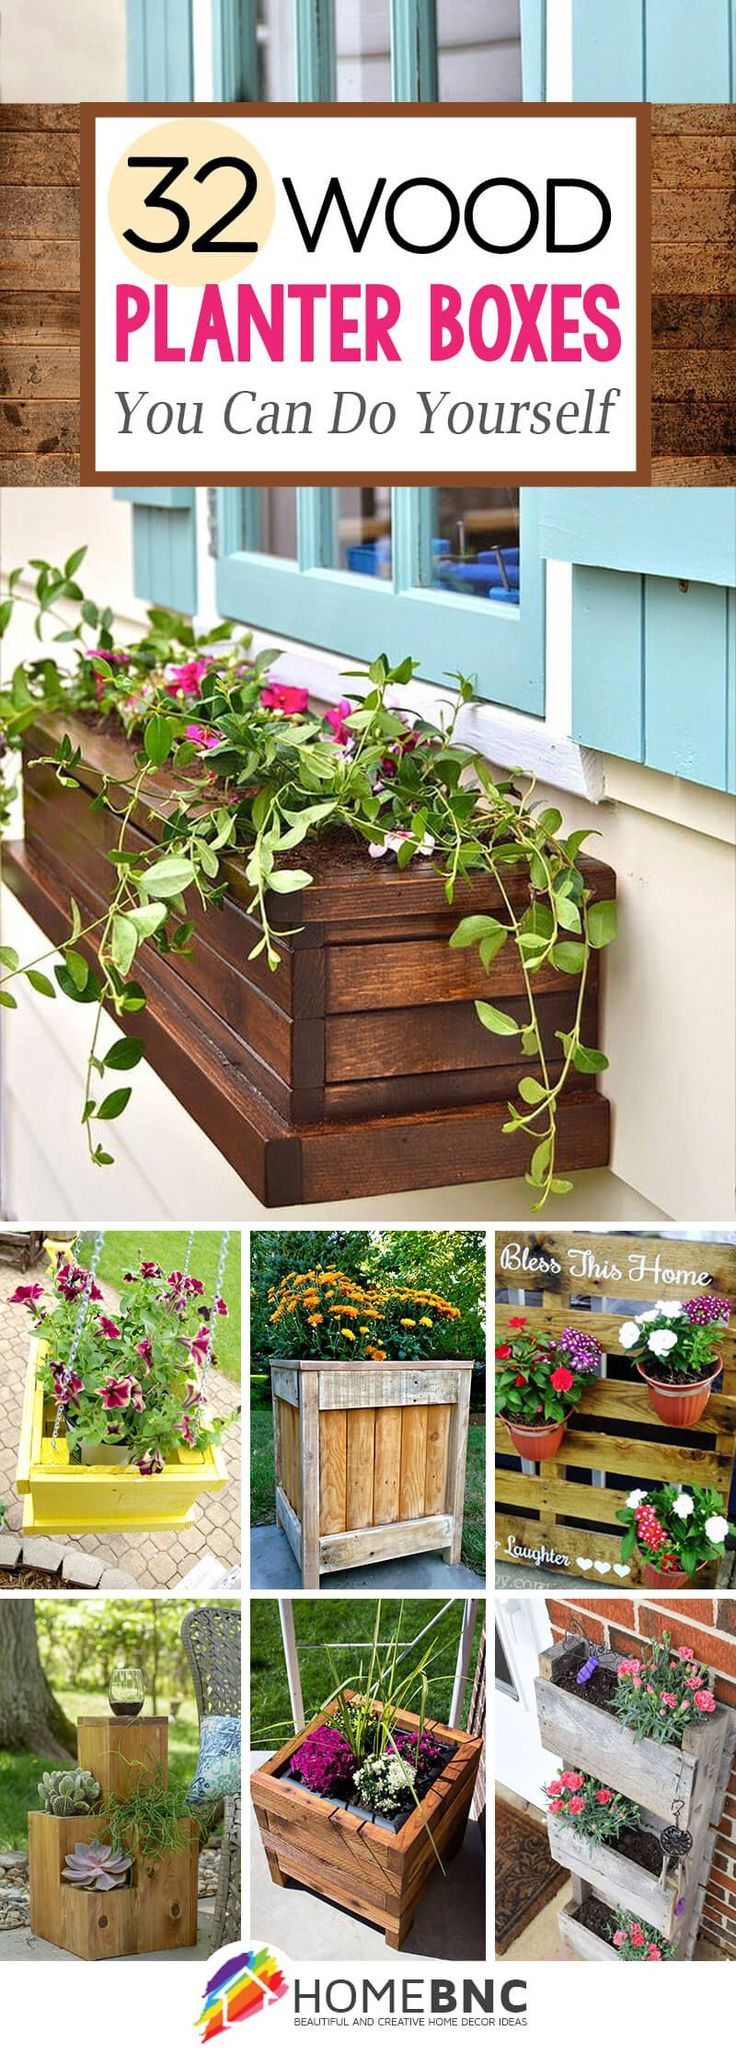 Best 25+ Diy planters ideas on Pinterest | Horta vertical, Planter ...